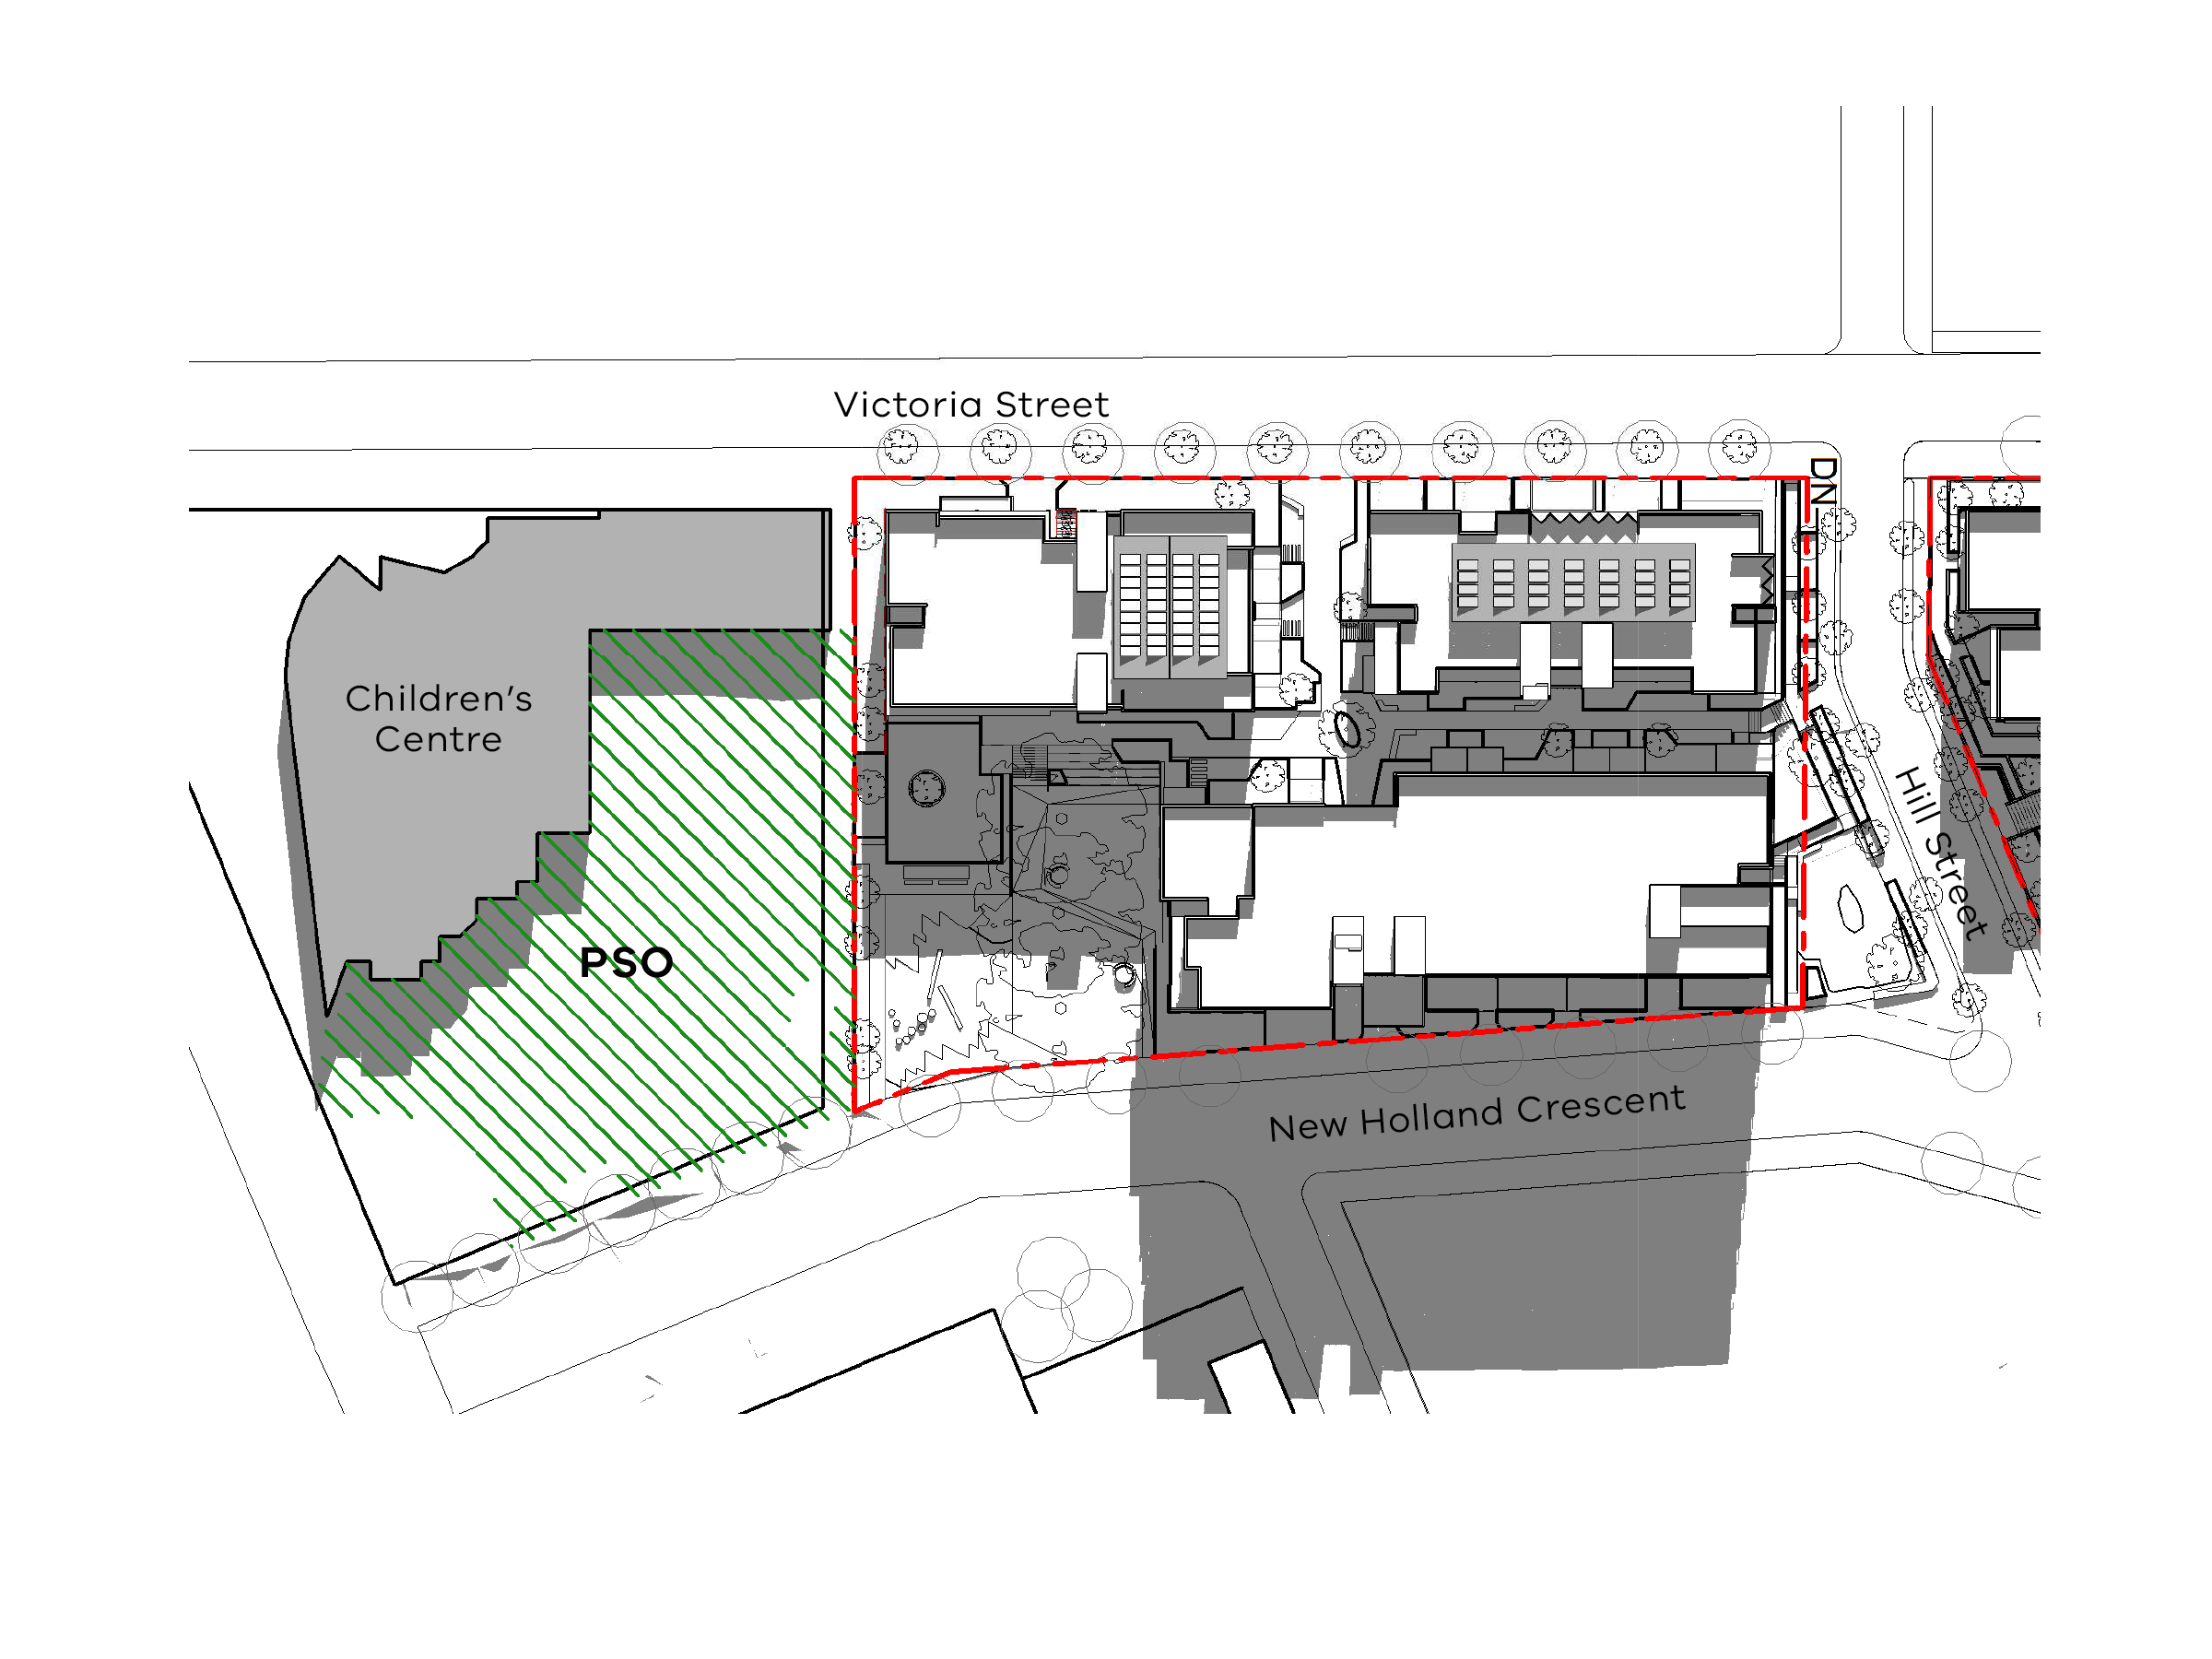 Diagram showing the shadows created by the south site of the new development in September at 3pm